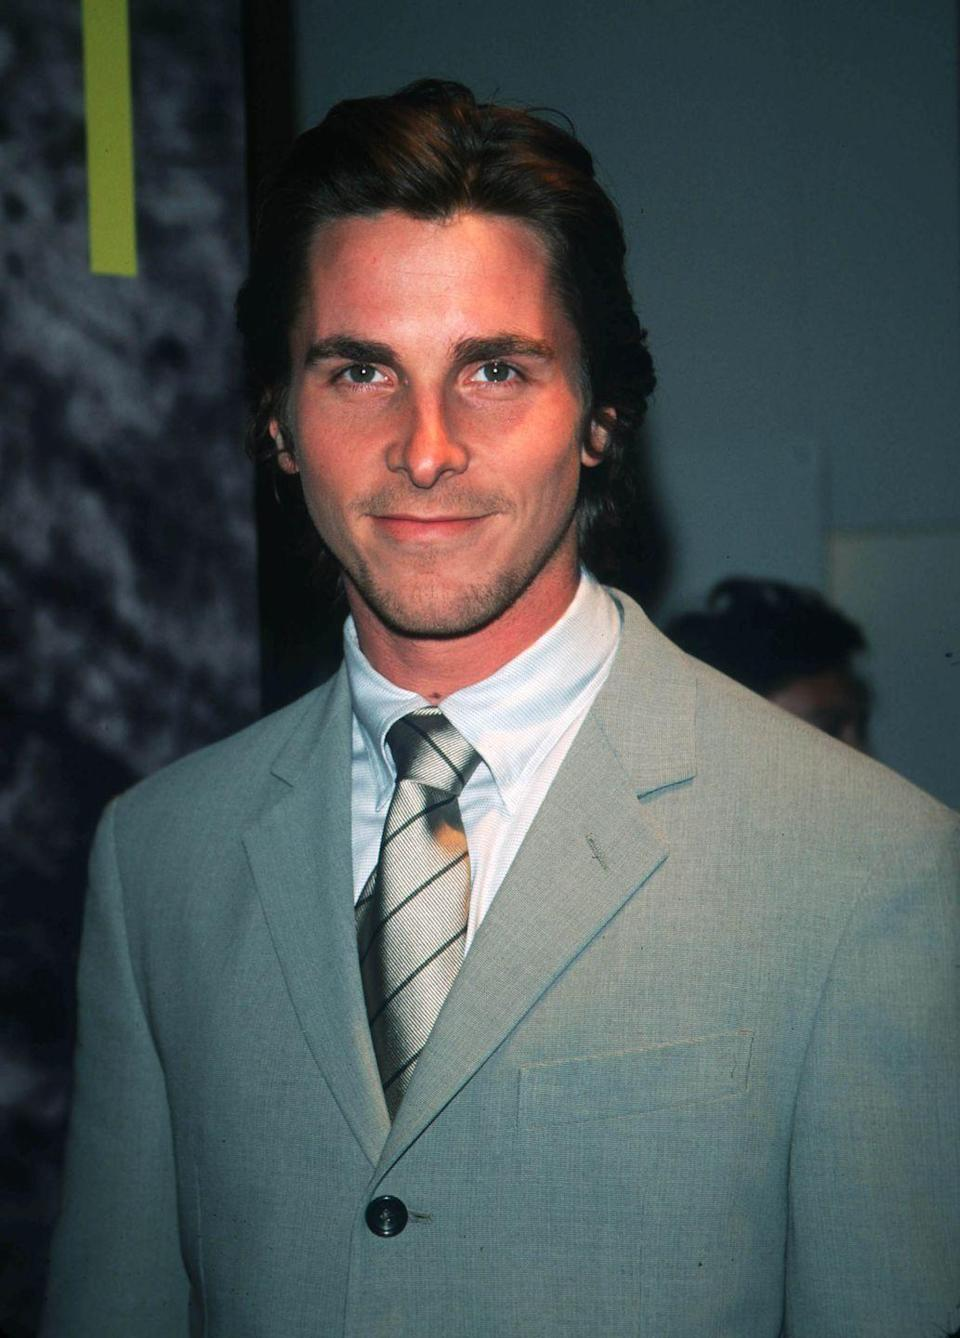 <p>Before <em>The Dark Knight </em>and <em>The Fighter</em>, it was already evident that Christian Bale was a star. After appearing in <em>American Psycho </em>in 2000—one of his biggest role to date—Bale became one of the hottest actors in Hollywood.</p>